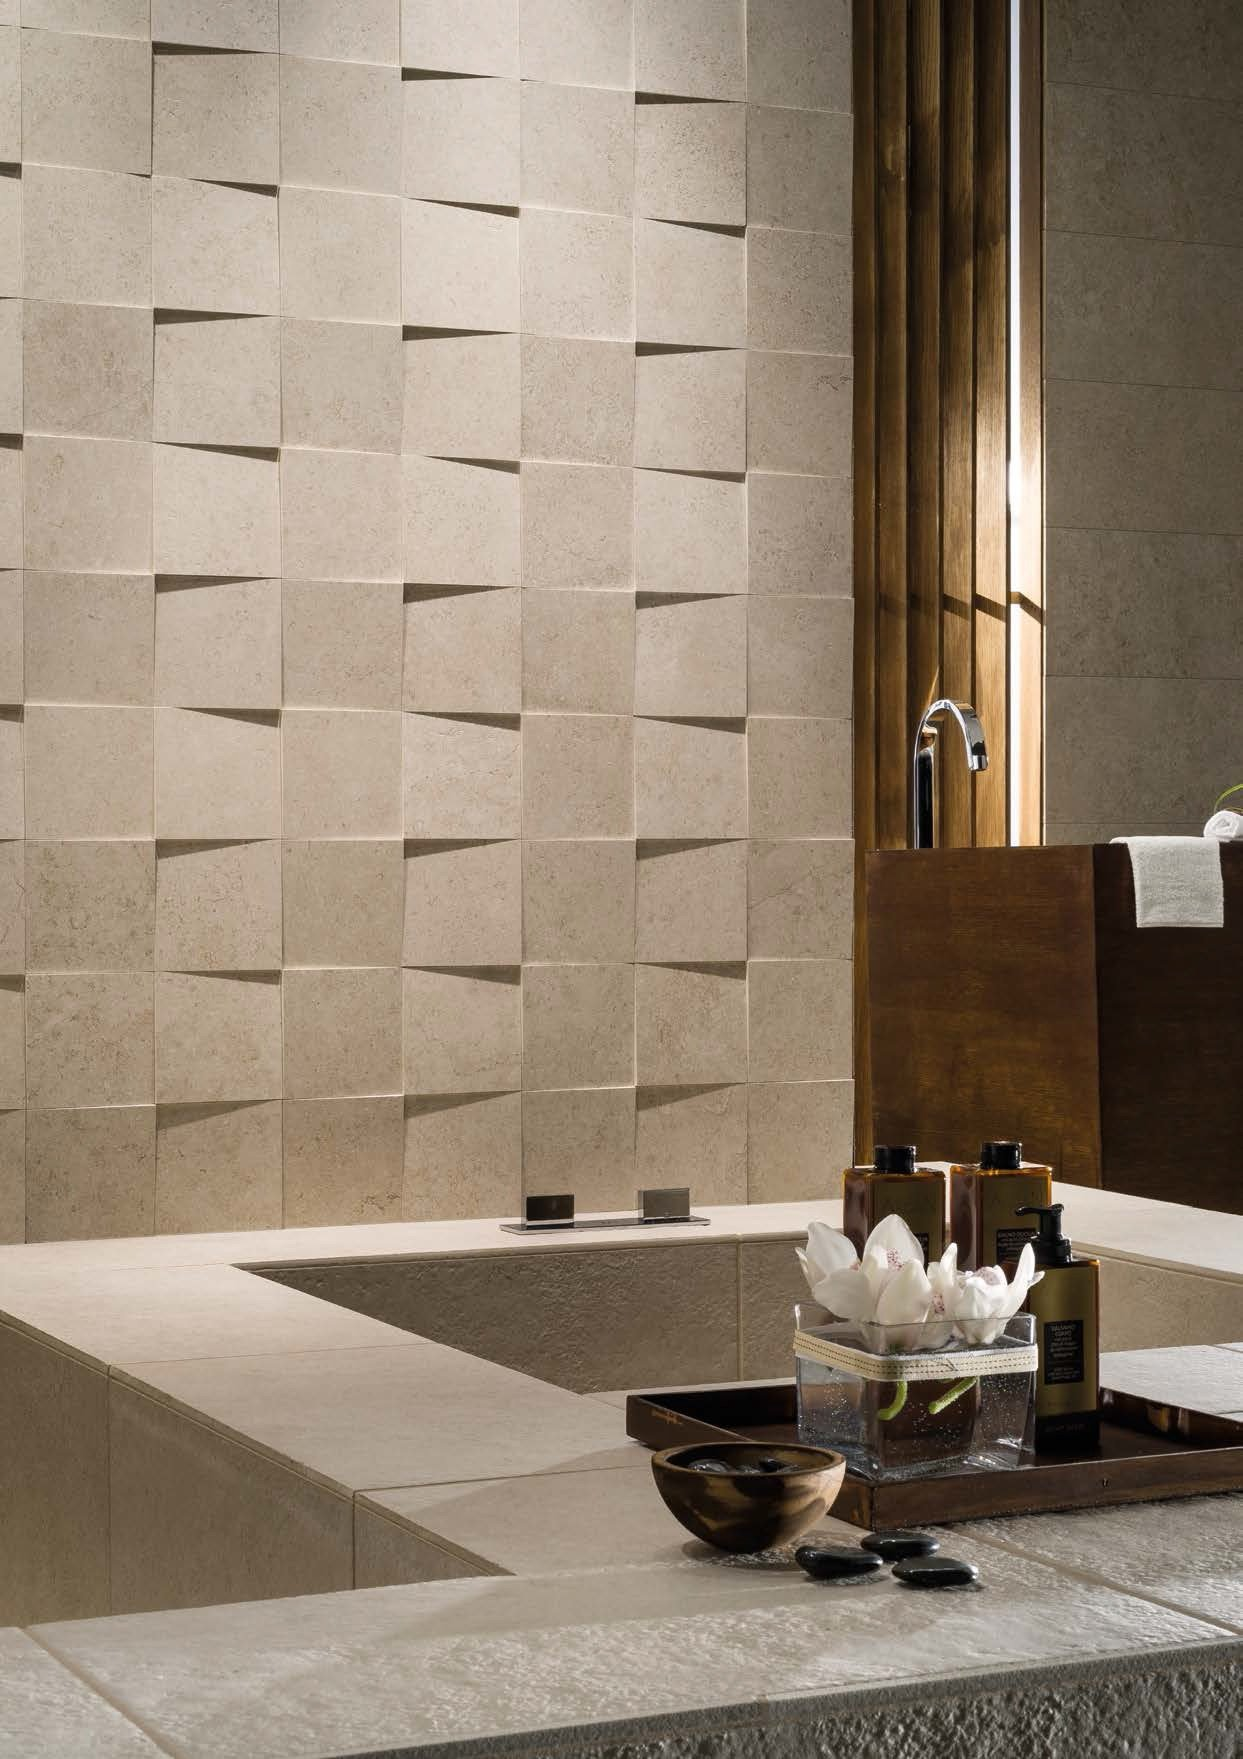 buxstone wall floor tiles by panaria ceramica. Black Bedroom Furniture Sets. Home Design Ideas